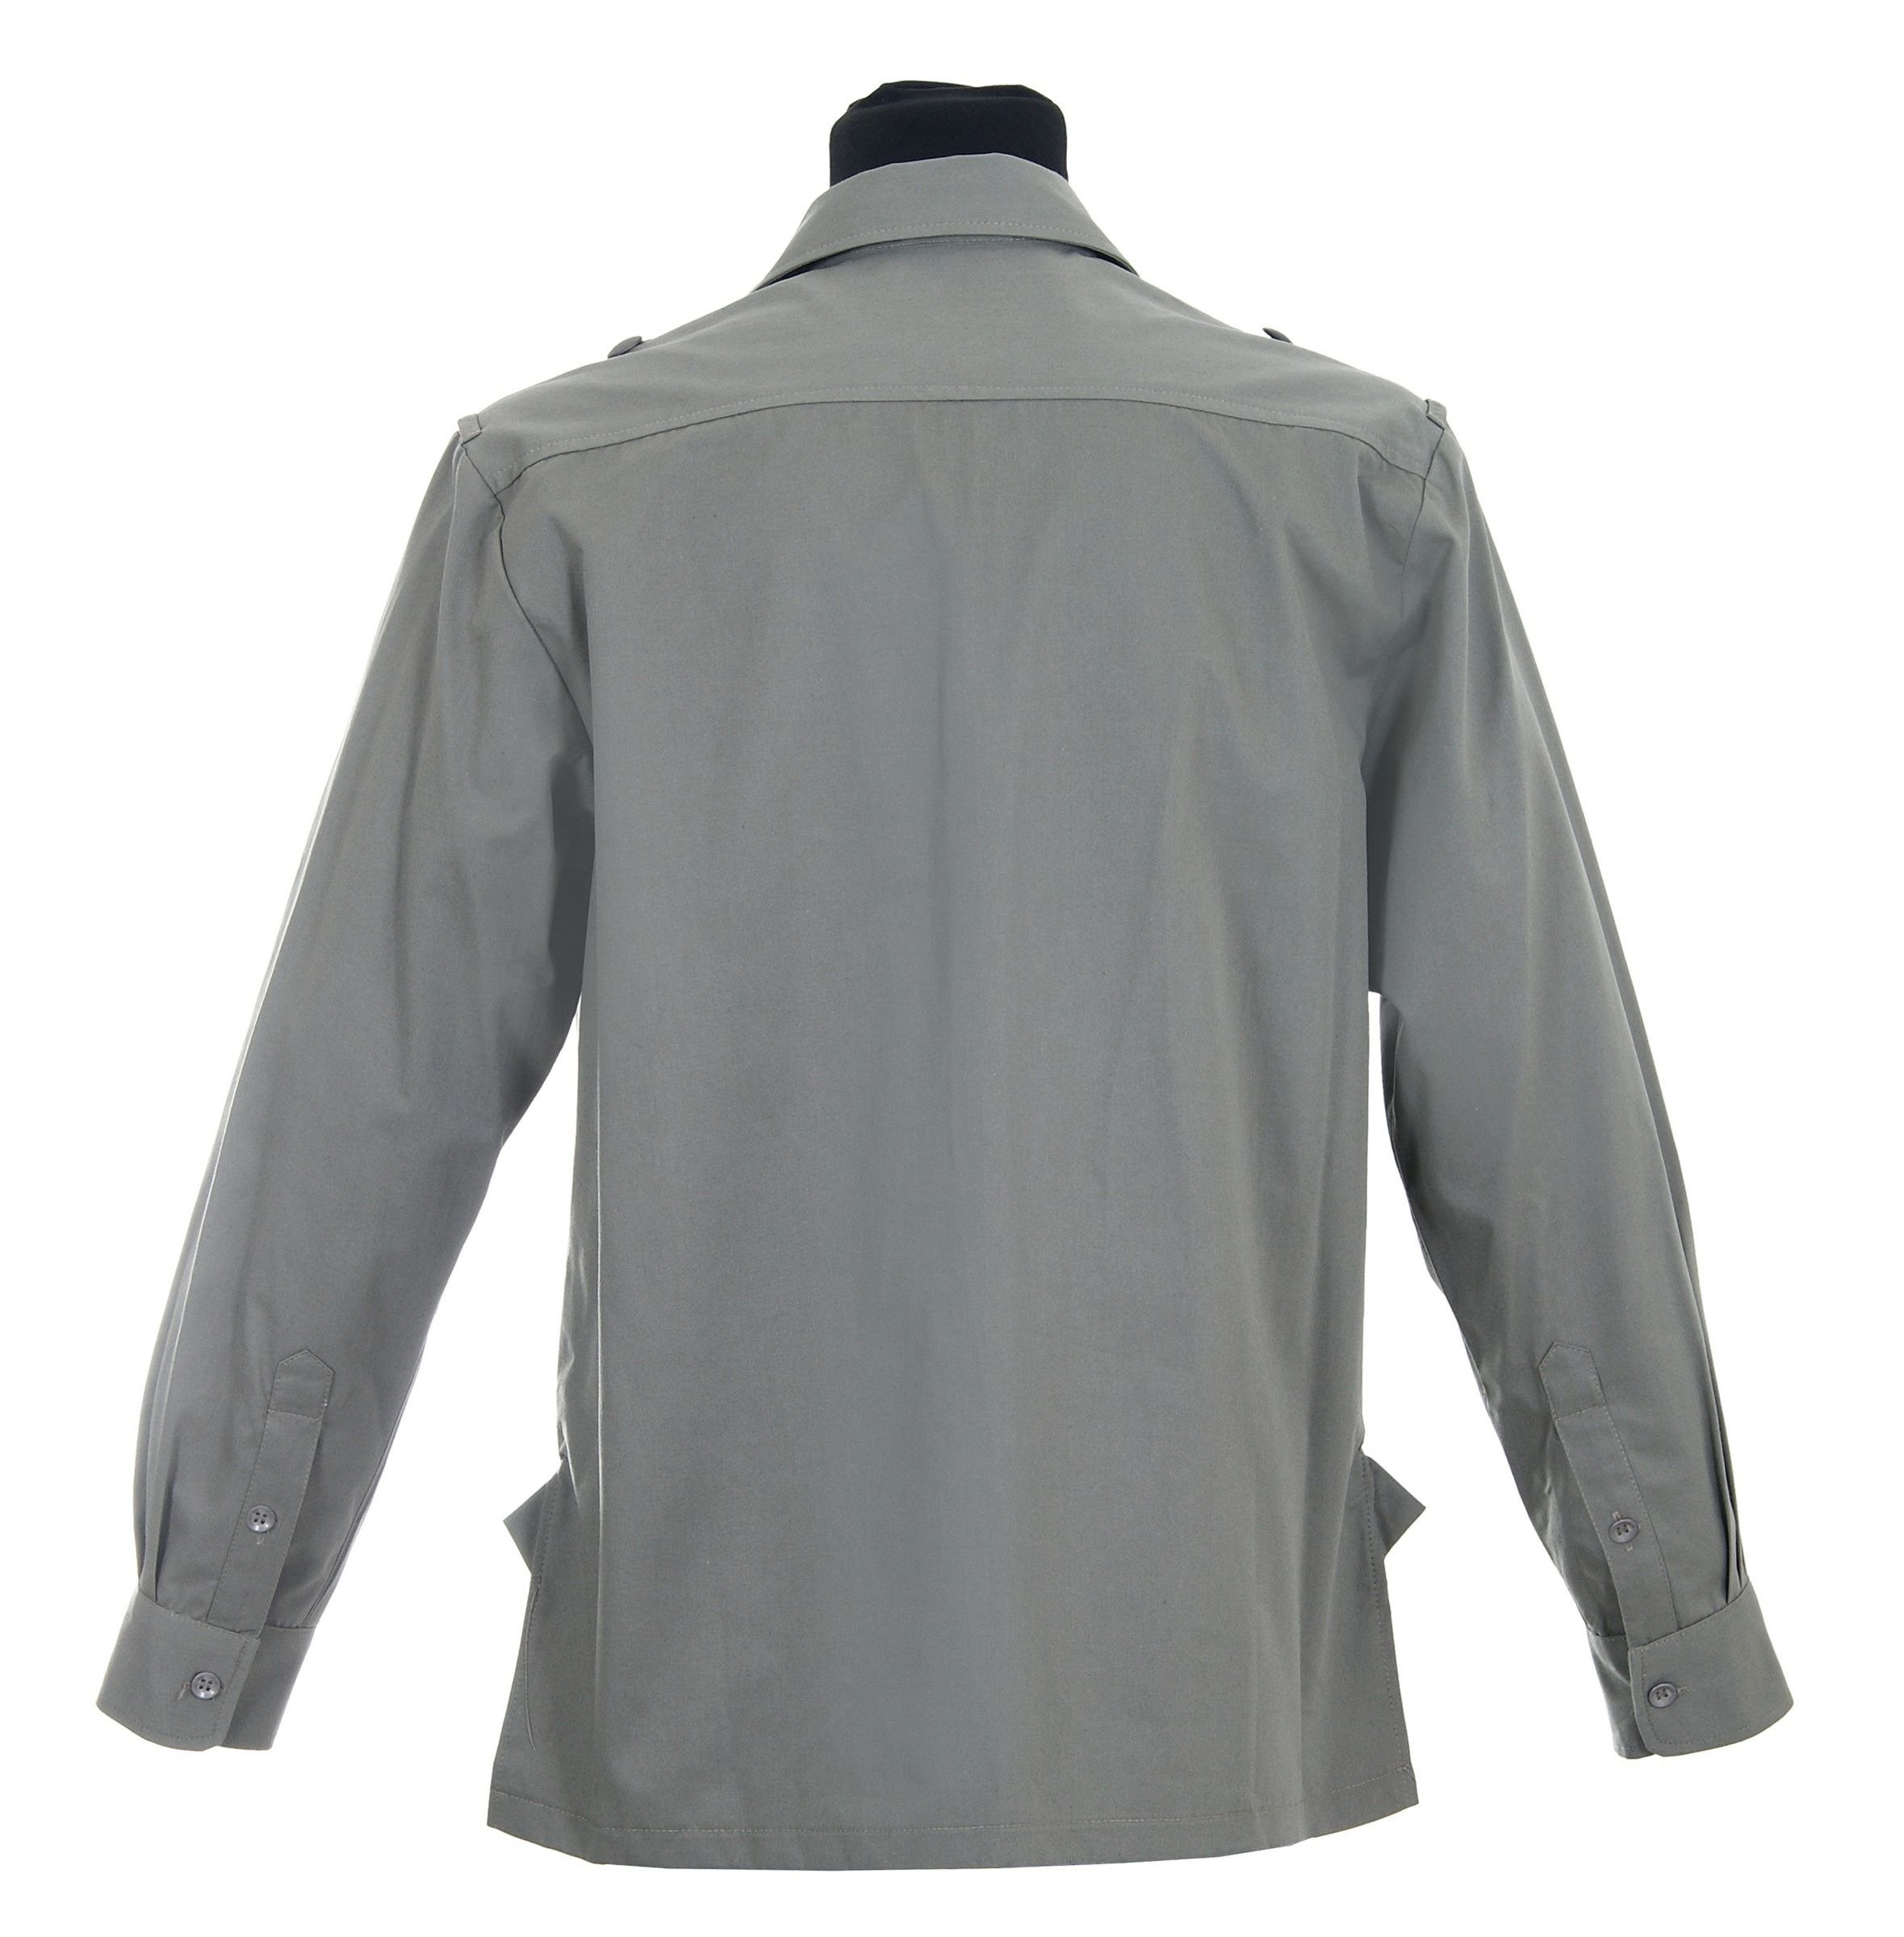 ... Hemd M43 - uniform shirt with buttons for shoulder boards - repro ... 183d77d1f6